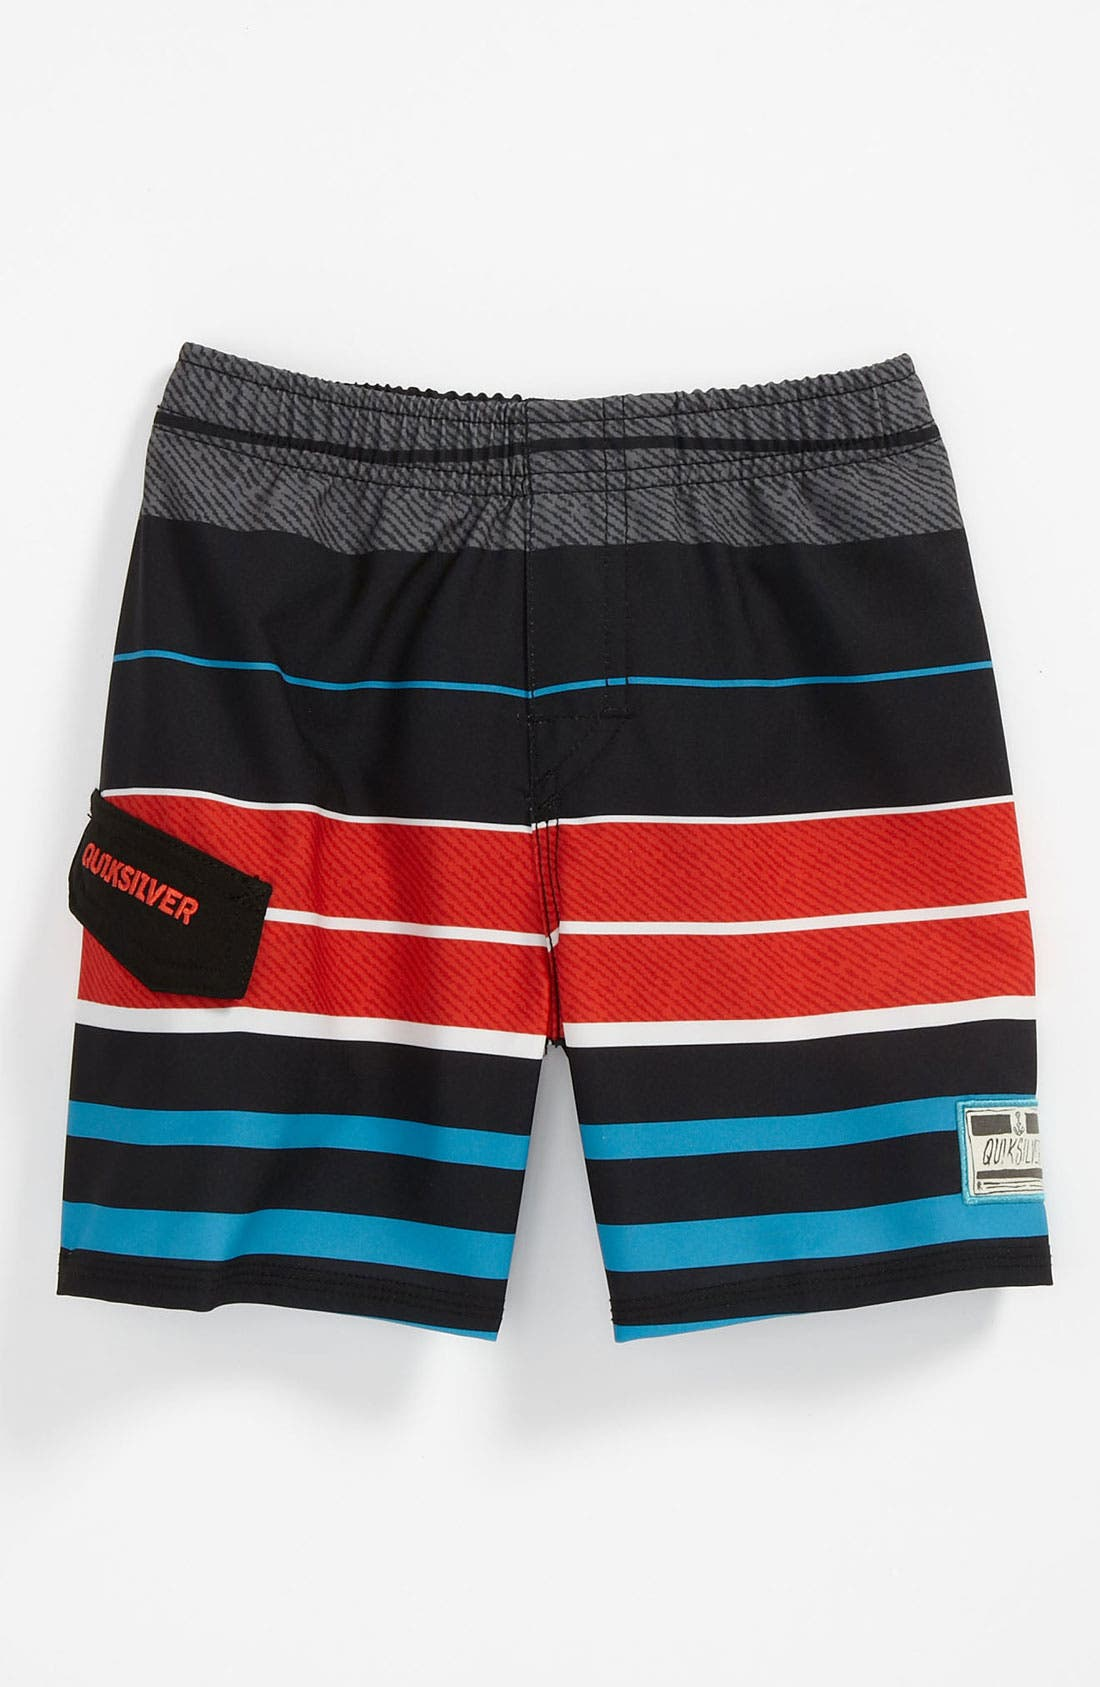 Main Image - Quiksilver 'Way Point' Volley Shorts (Toddler)